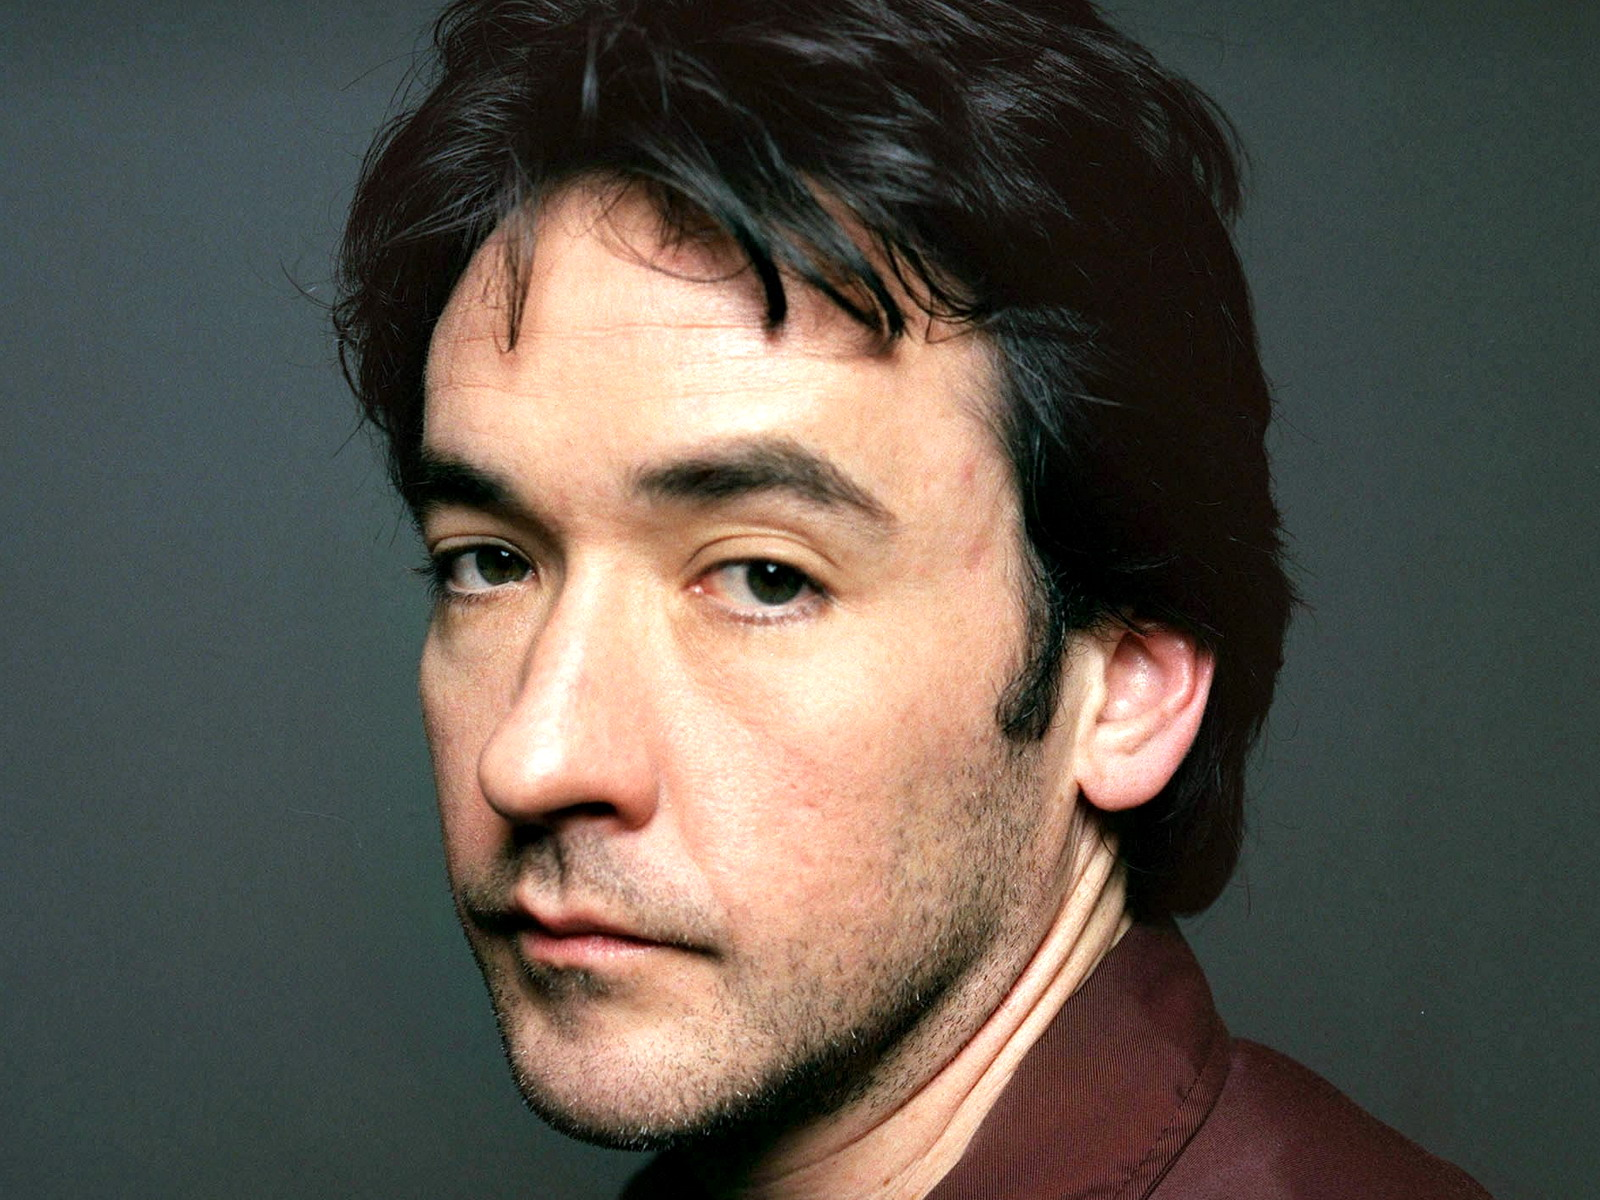 John Paul Cusack (born June 28